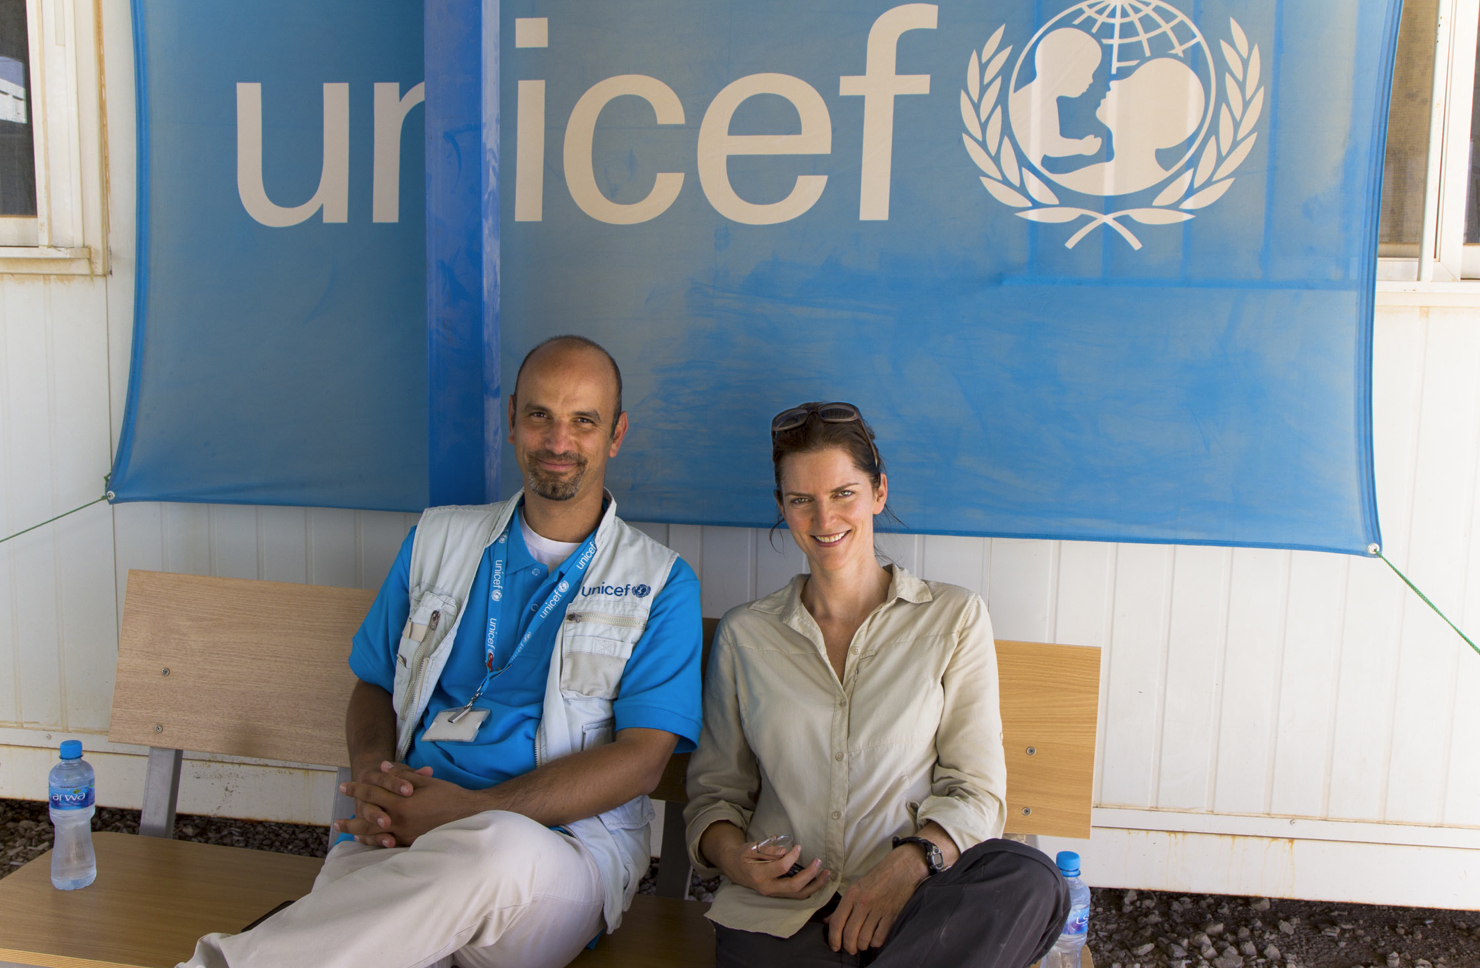 Rebecca Arnold with UNICEF, Zaatari Syrian refugee camp, Jordan